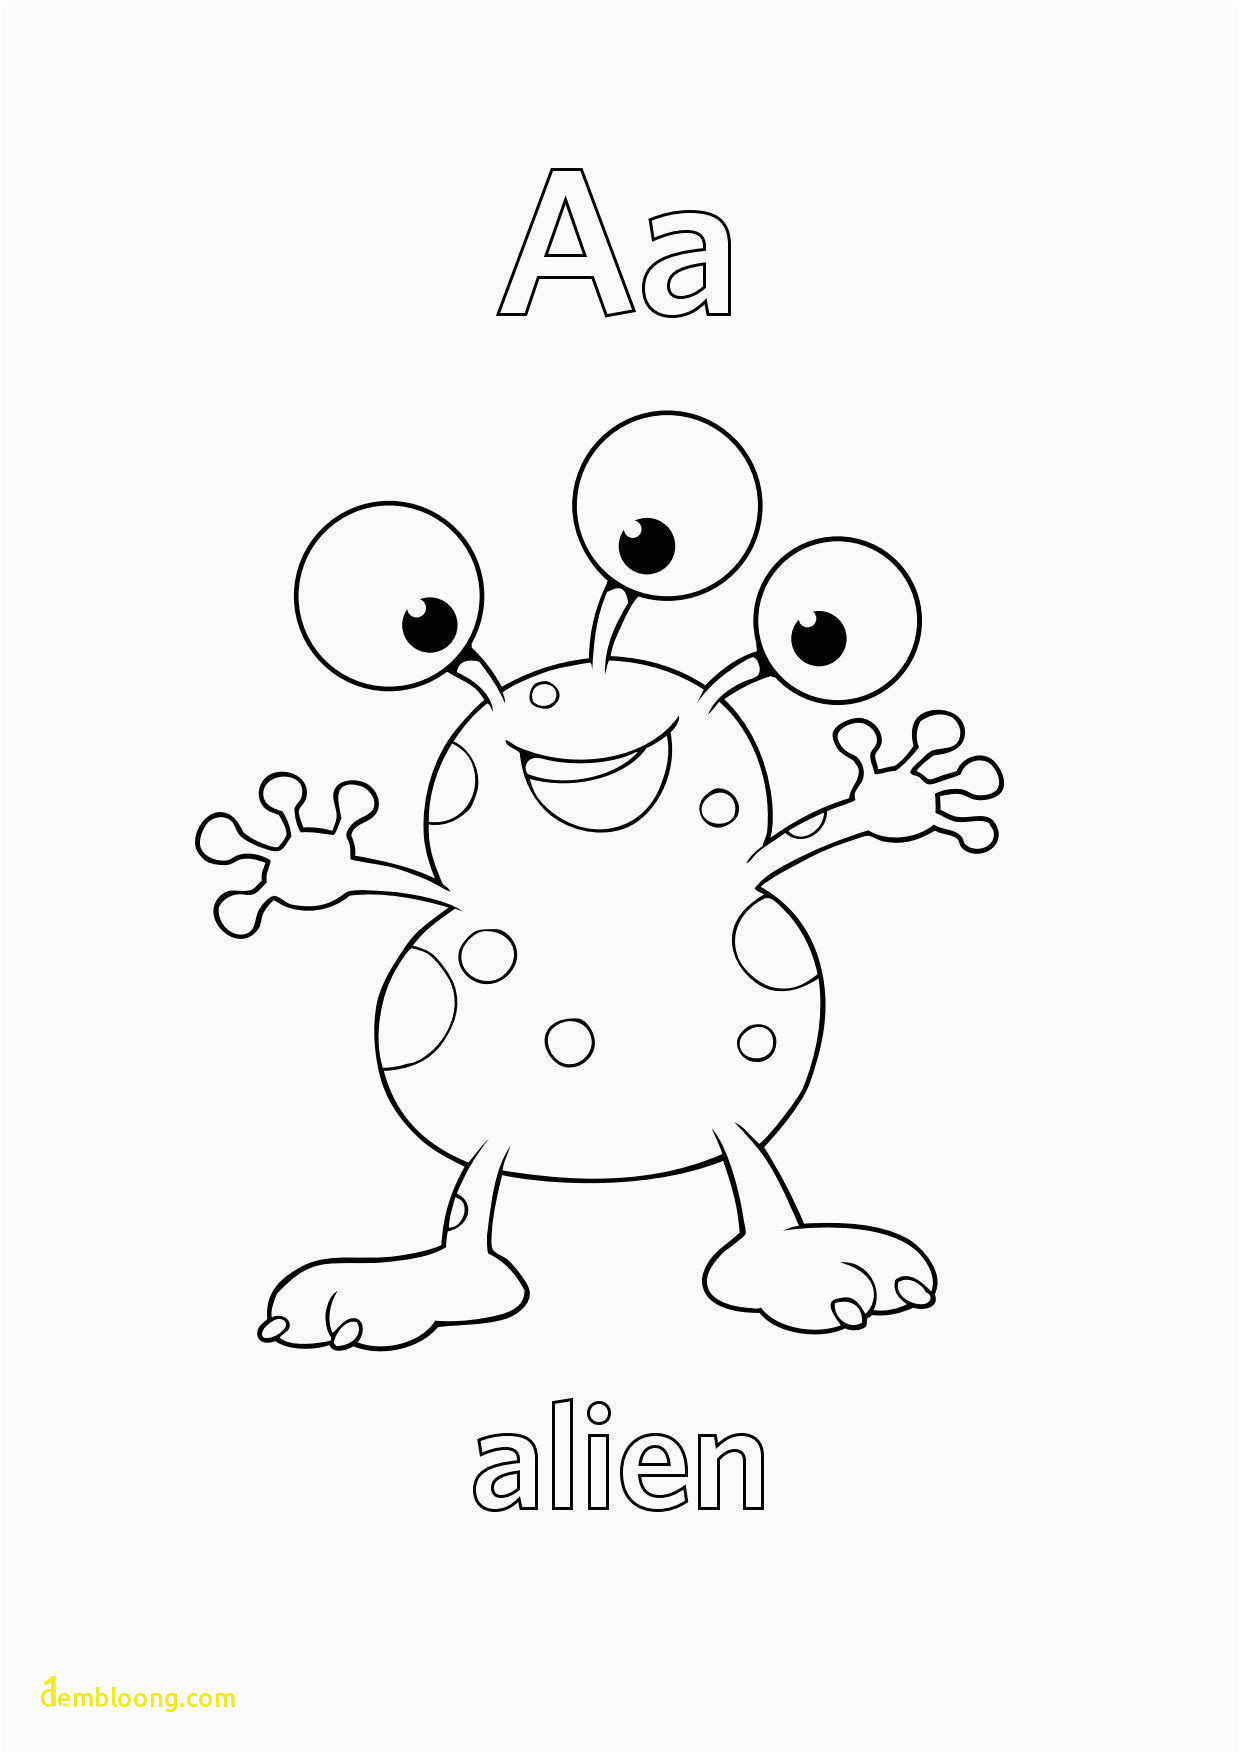 alphabet coloring pages for toddlers new coloring pages free frozen coloring pages coloring pagess of alphabet coloring pages for toddlers